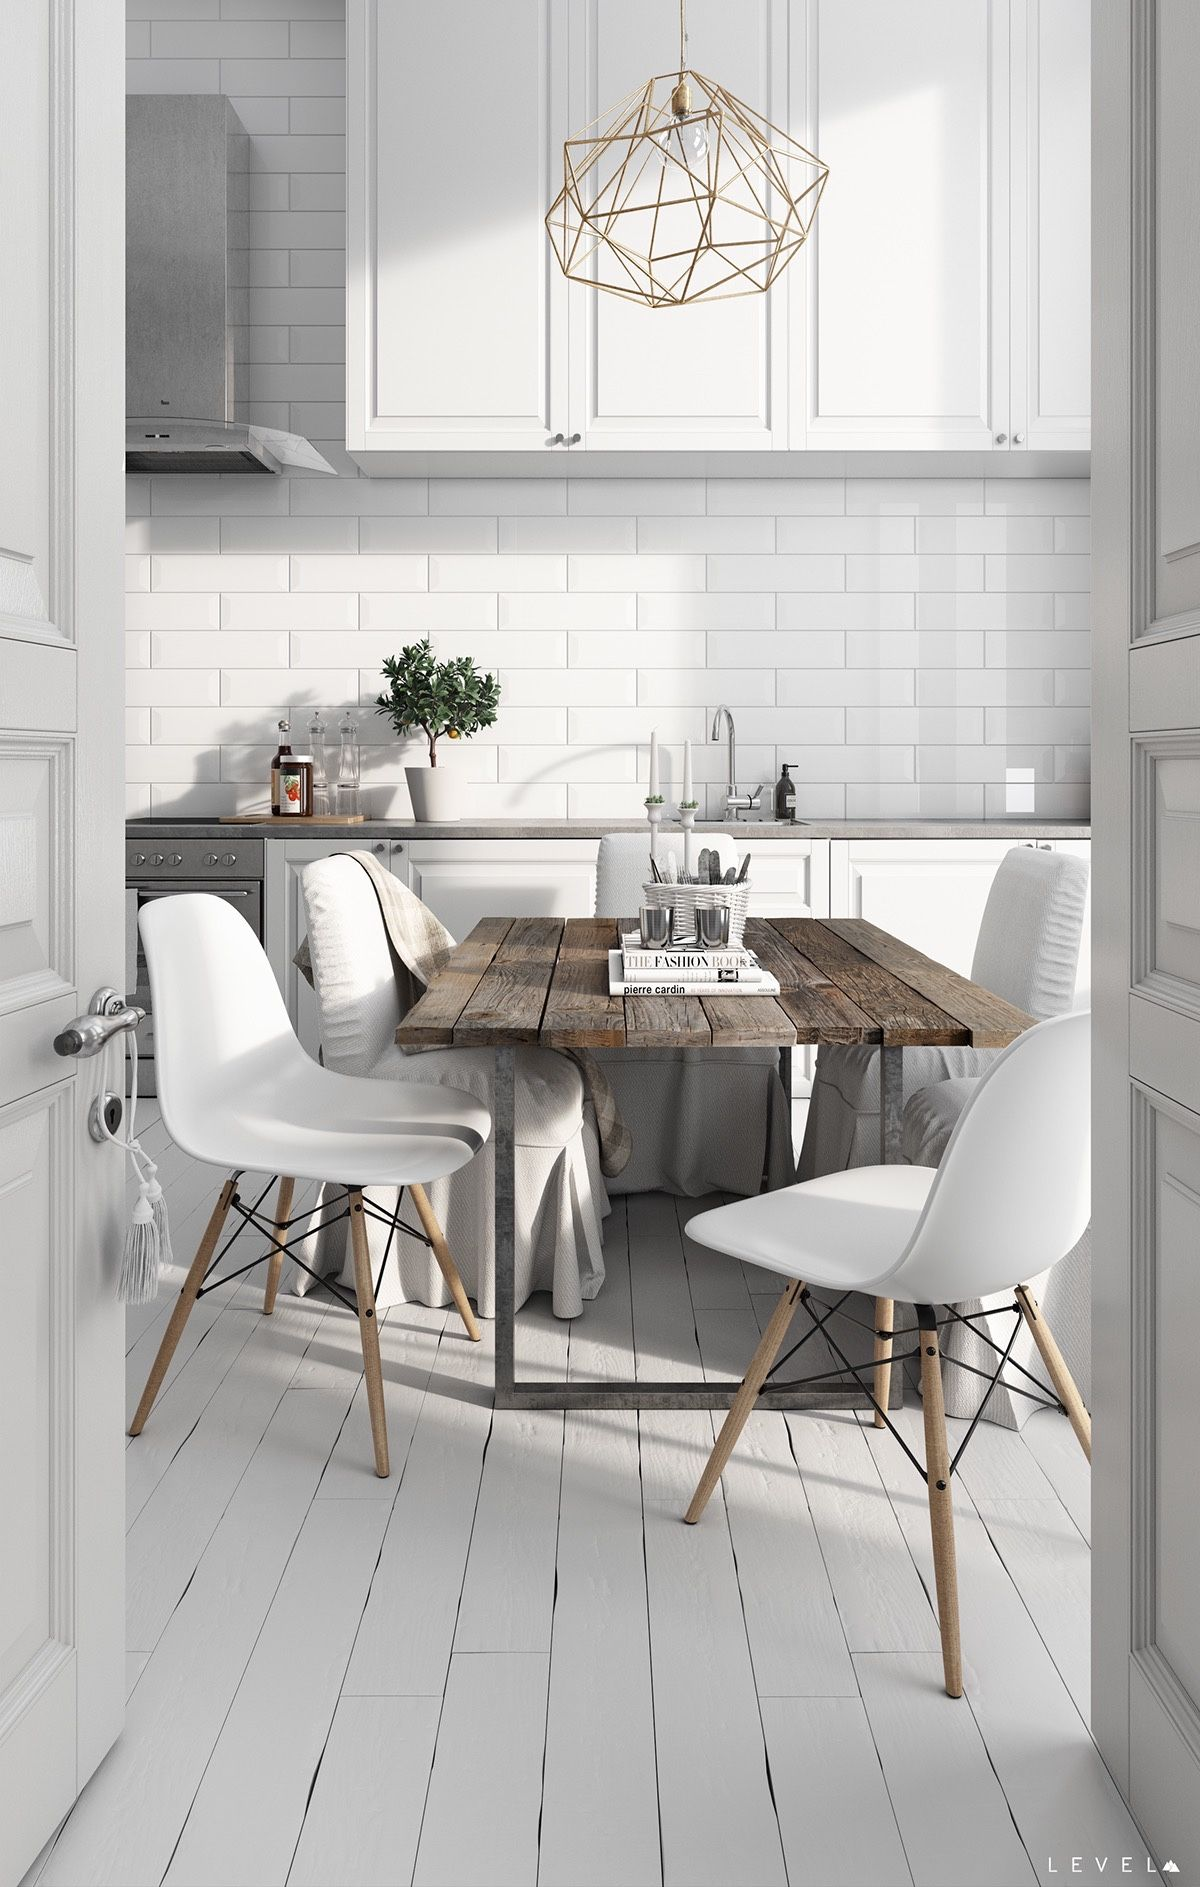 What s not to love about this dining room kitchen combo there 39 s a clean white kitchen a - Scandinavian kitchen table ...